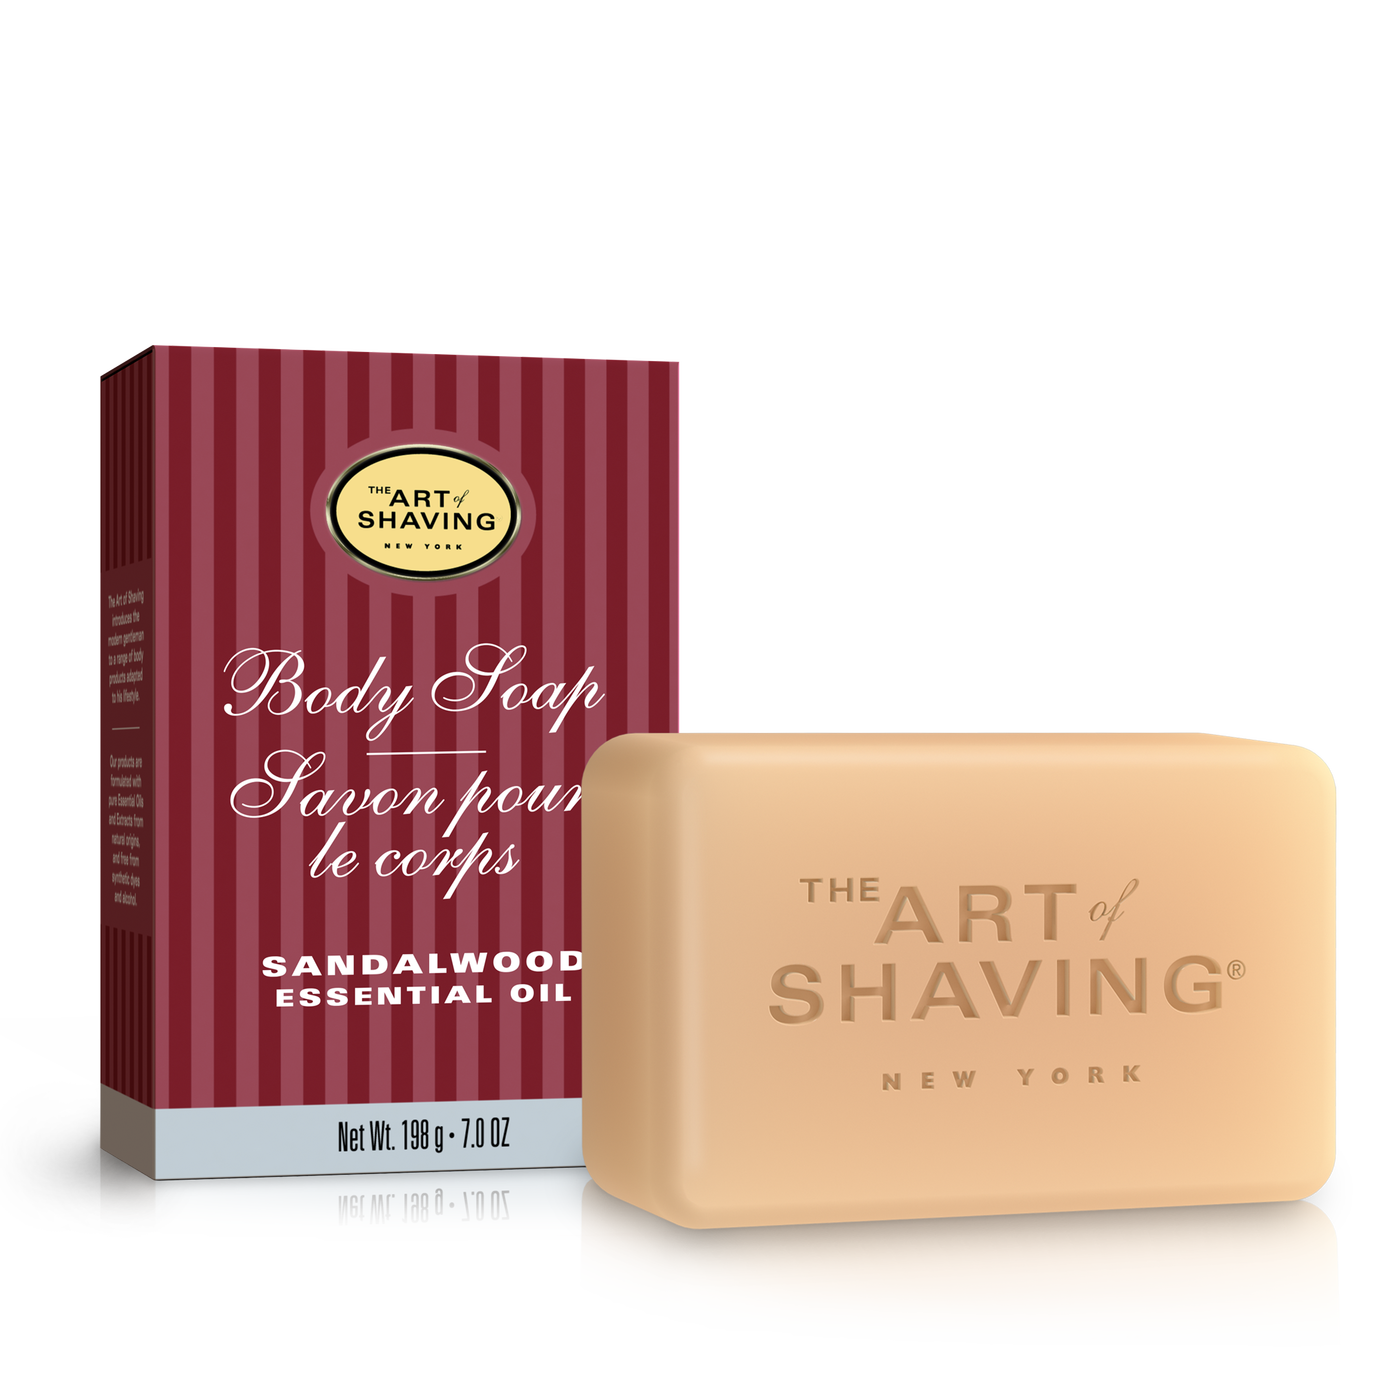 The Art Of Shaving: Body Soap - Sandalwood